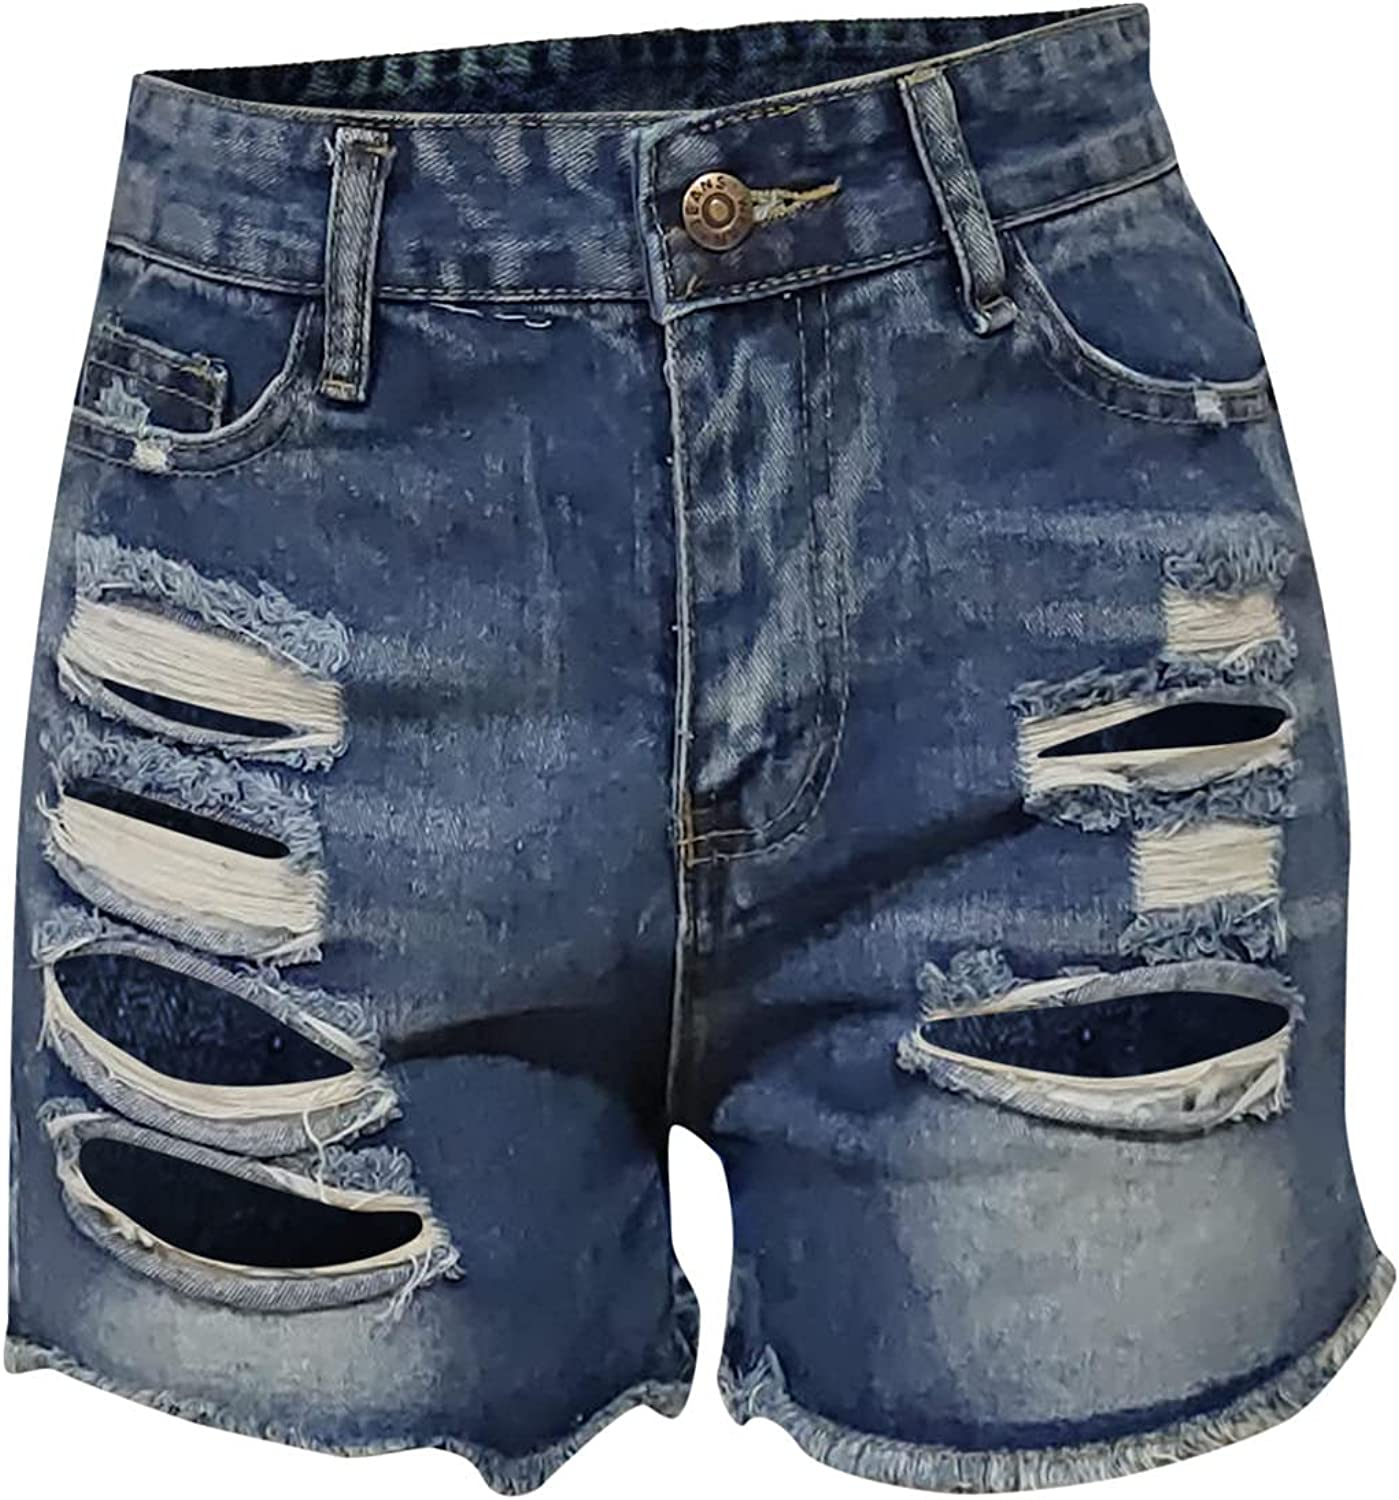 UBST Denim Shorts for Women Distressed Ripped Jean Shorts Summer Stretchy Frayed Raw Hem Hot Shorts Jeans with Pockets